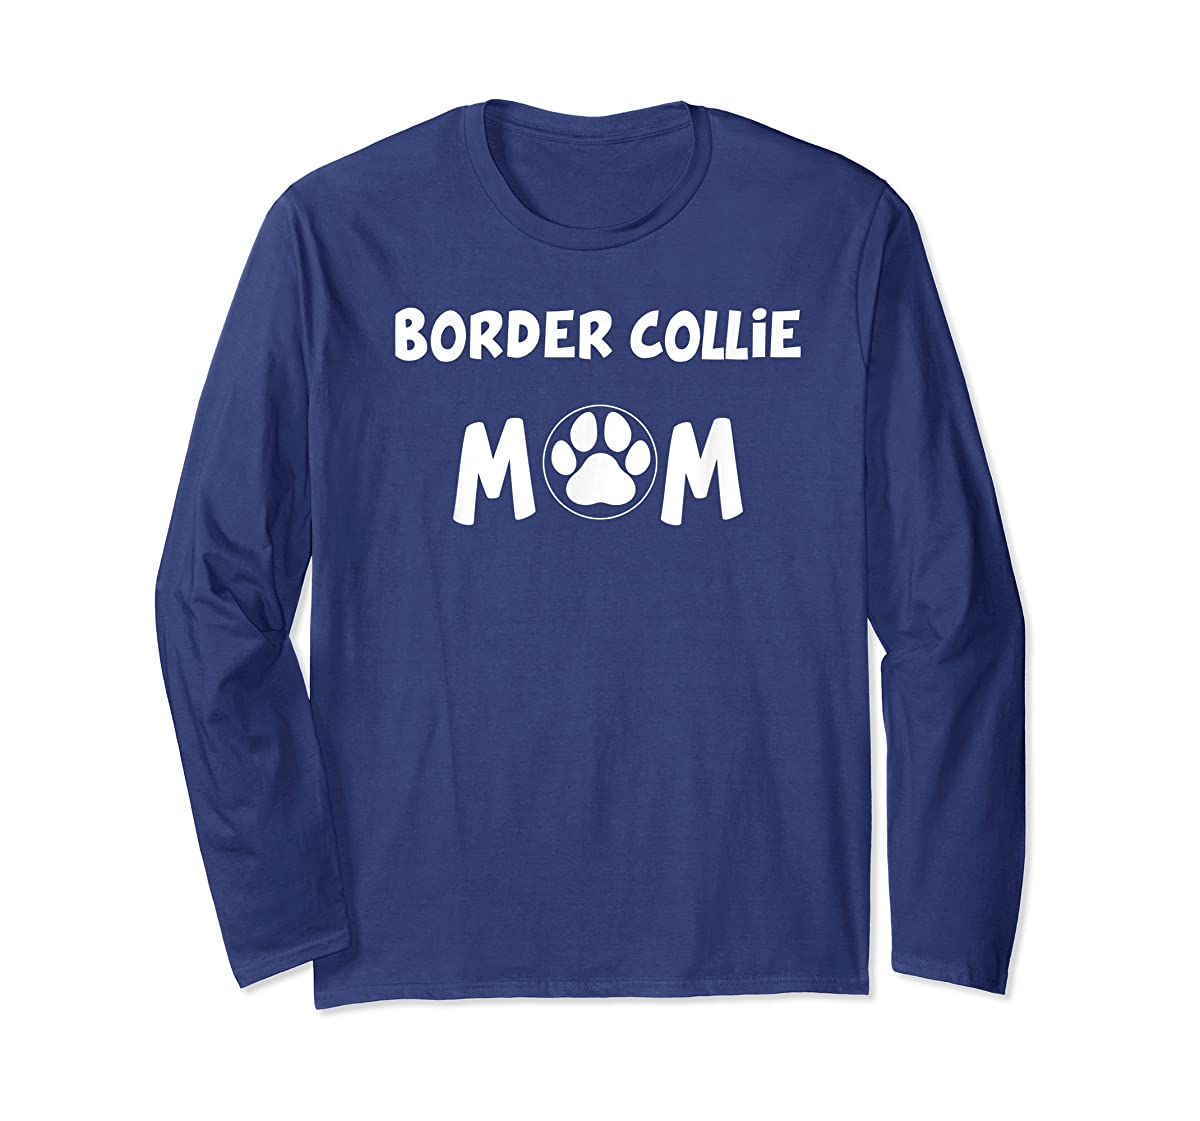 Perfect Dog Mother Gift | Border Collie Mom T-Shirt-Long Sleeve-Navy